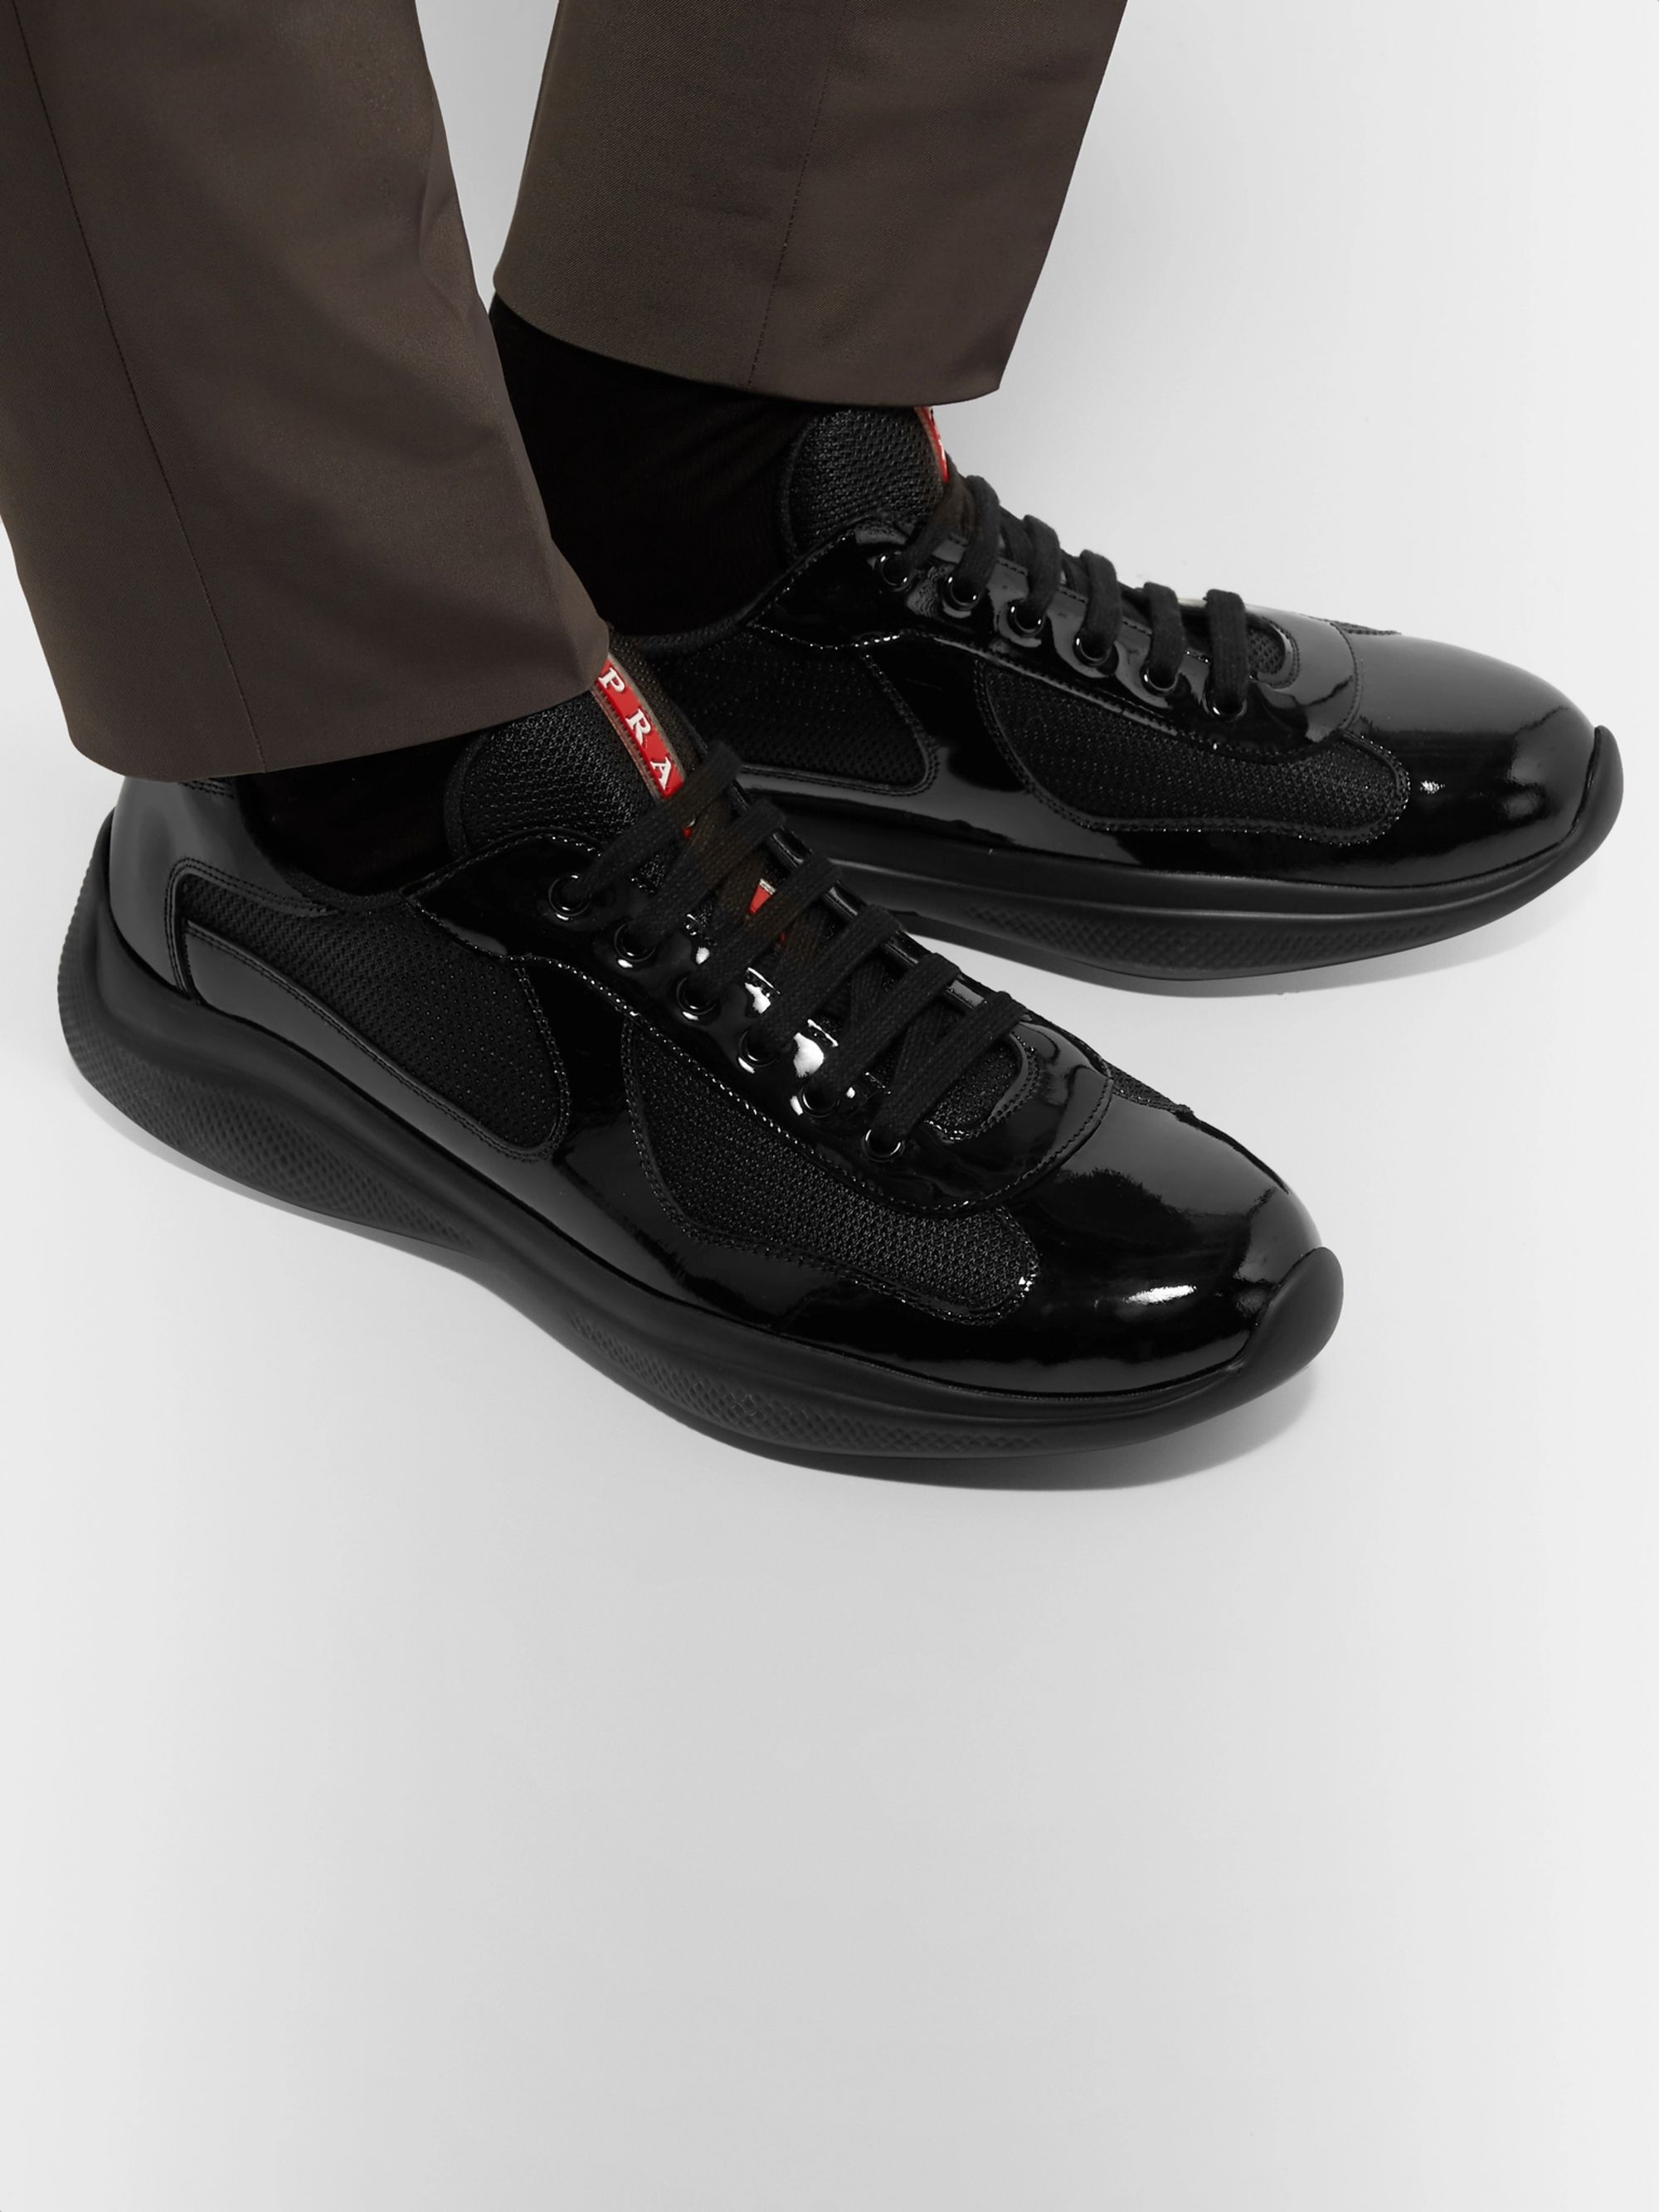 America's Cup Patent Leather and Mesh Sneakers